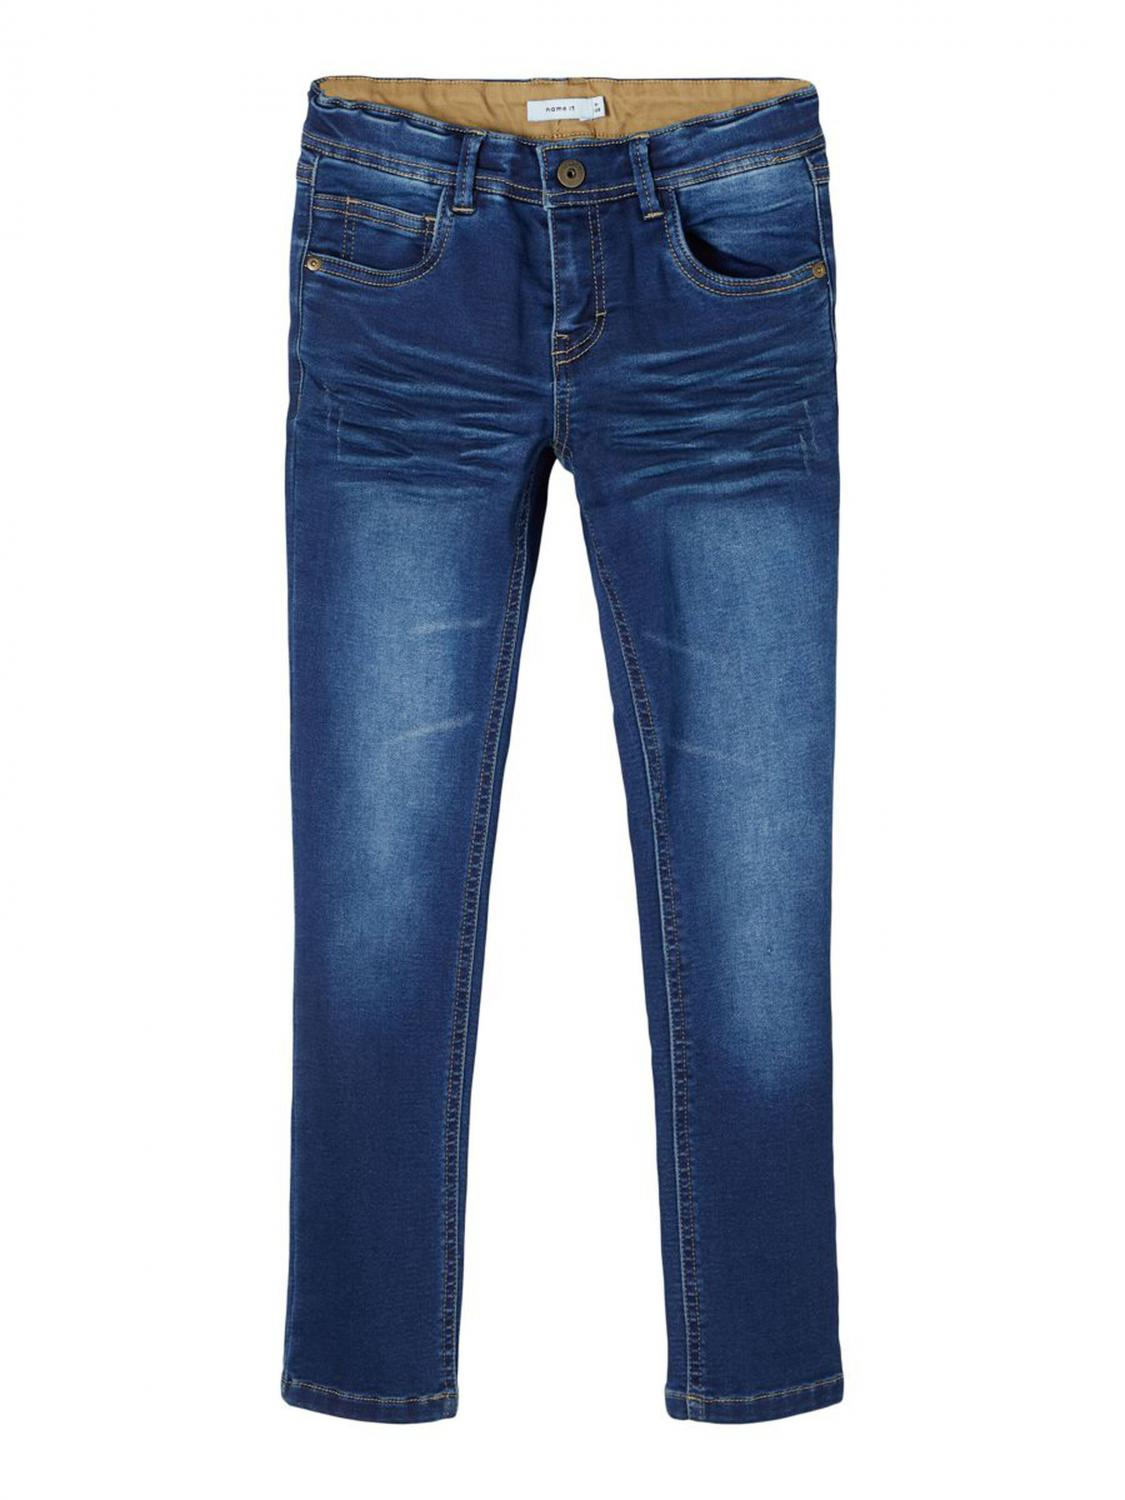 NAME IT REGULAR FIT JEANS